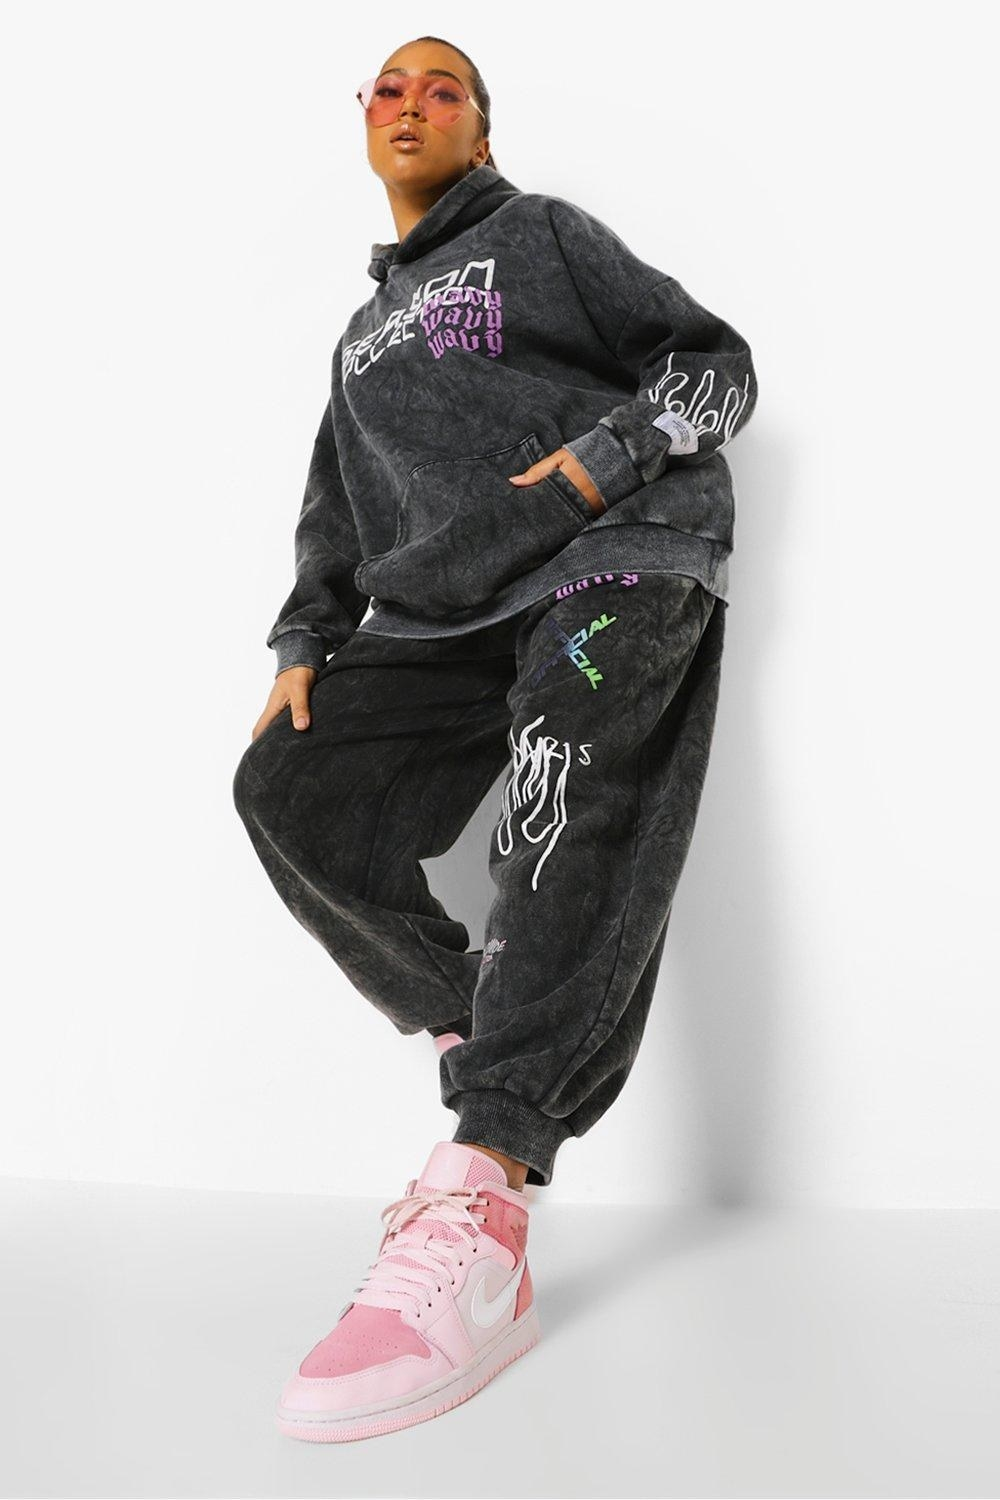 model wearing matching grey sweatshirt and sweatpants with illustrations on both